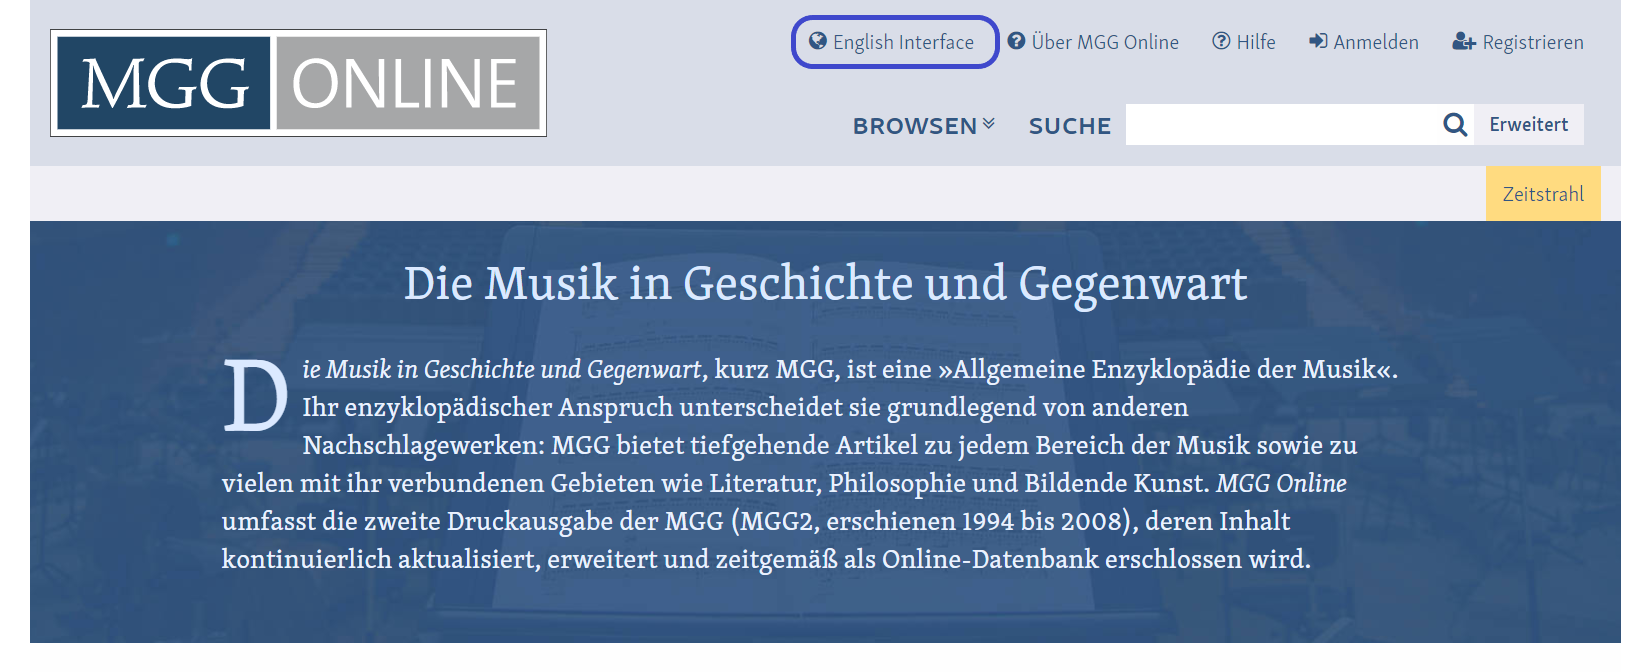 Changing the MGG Online interface from German to English